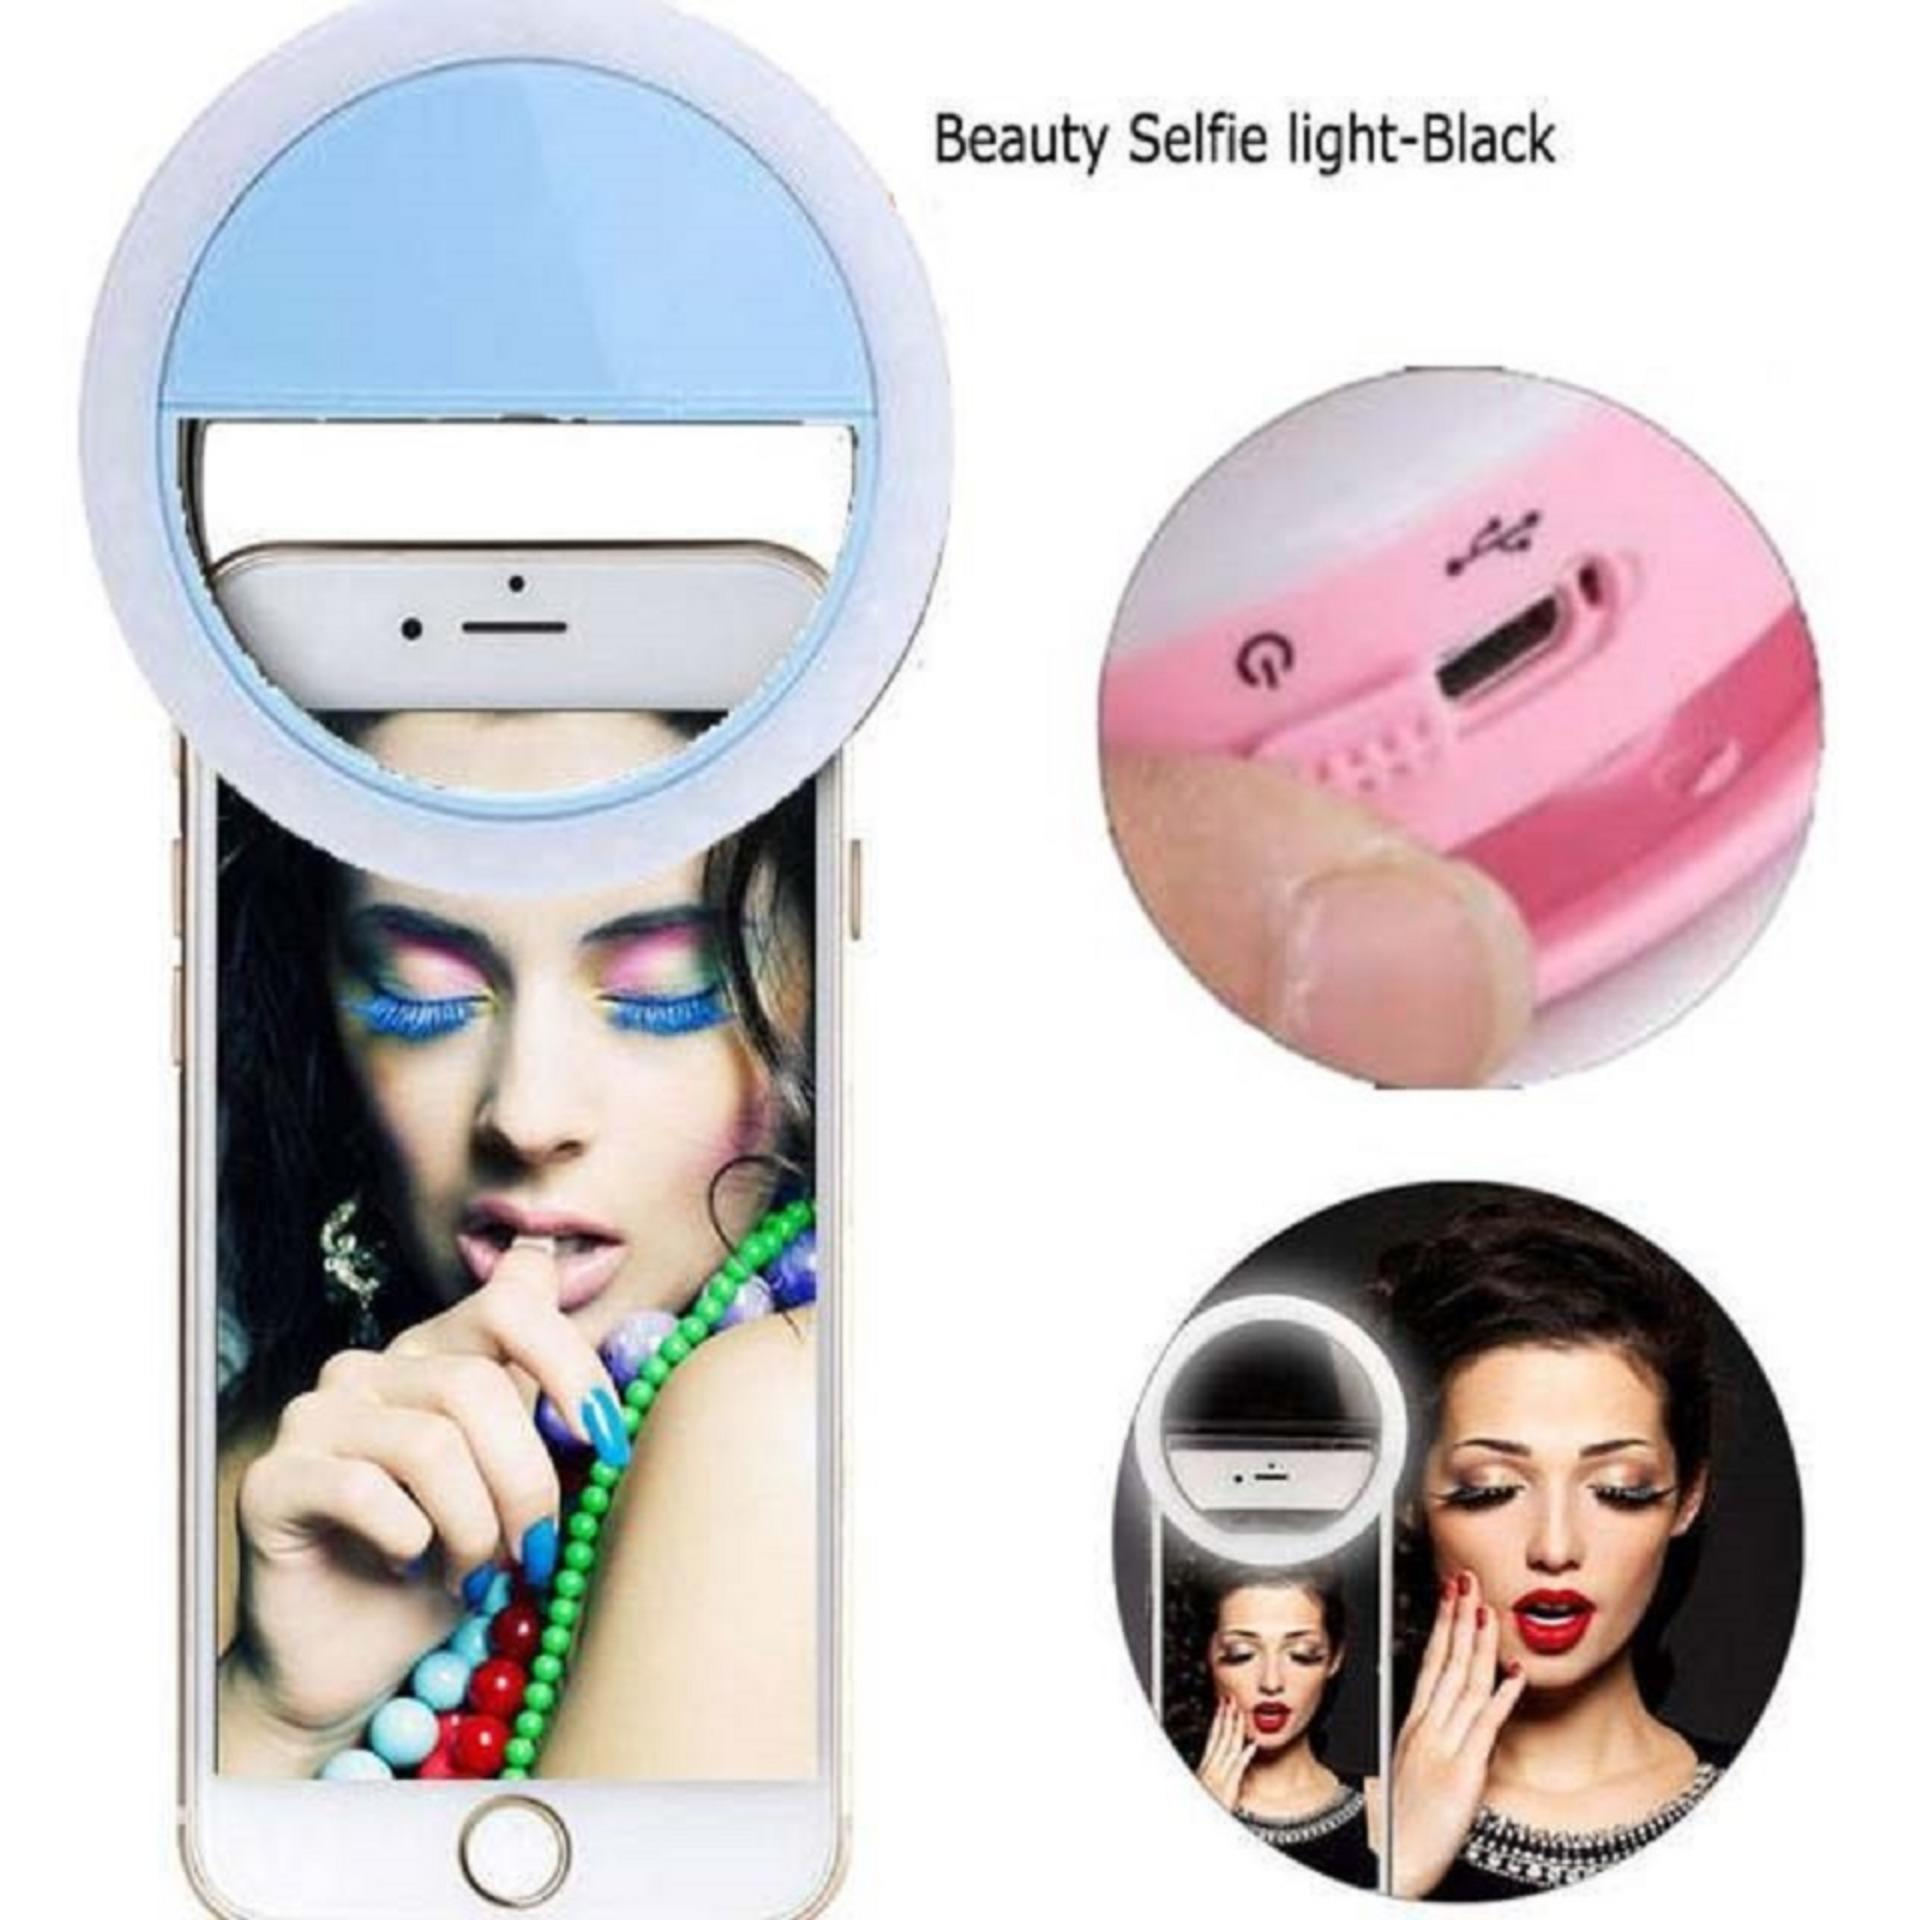 Bendoel 36 LED Selfie Ring Lampu Flash Light Smartphone Universal Portable For Fotografi / Webcam / MakeUp / Laptop / Android / Emergency / Windows / iOS / Tablet With USB Charger - Biru Muda